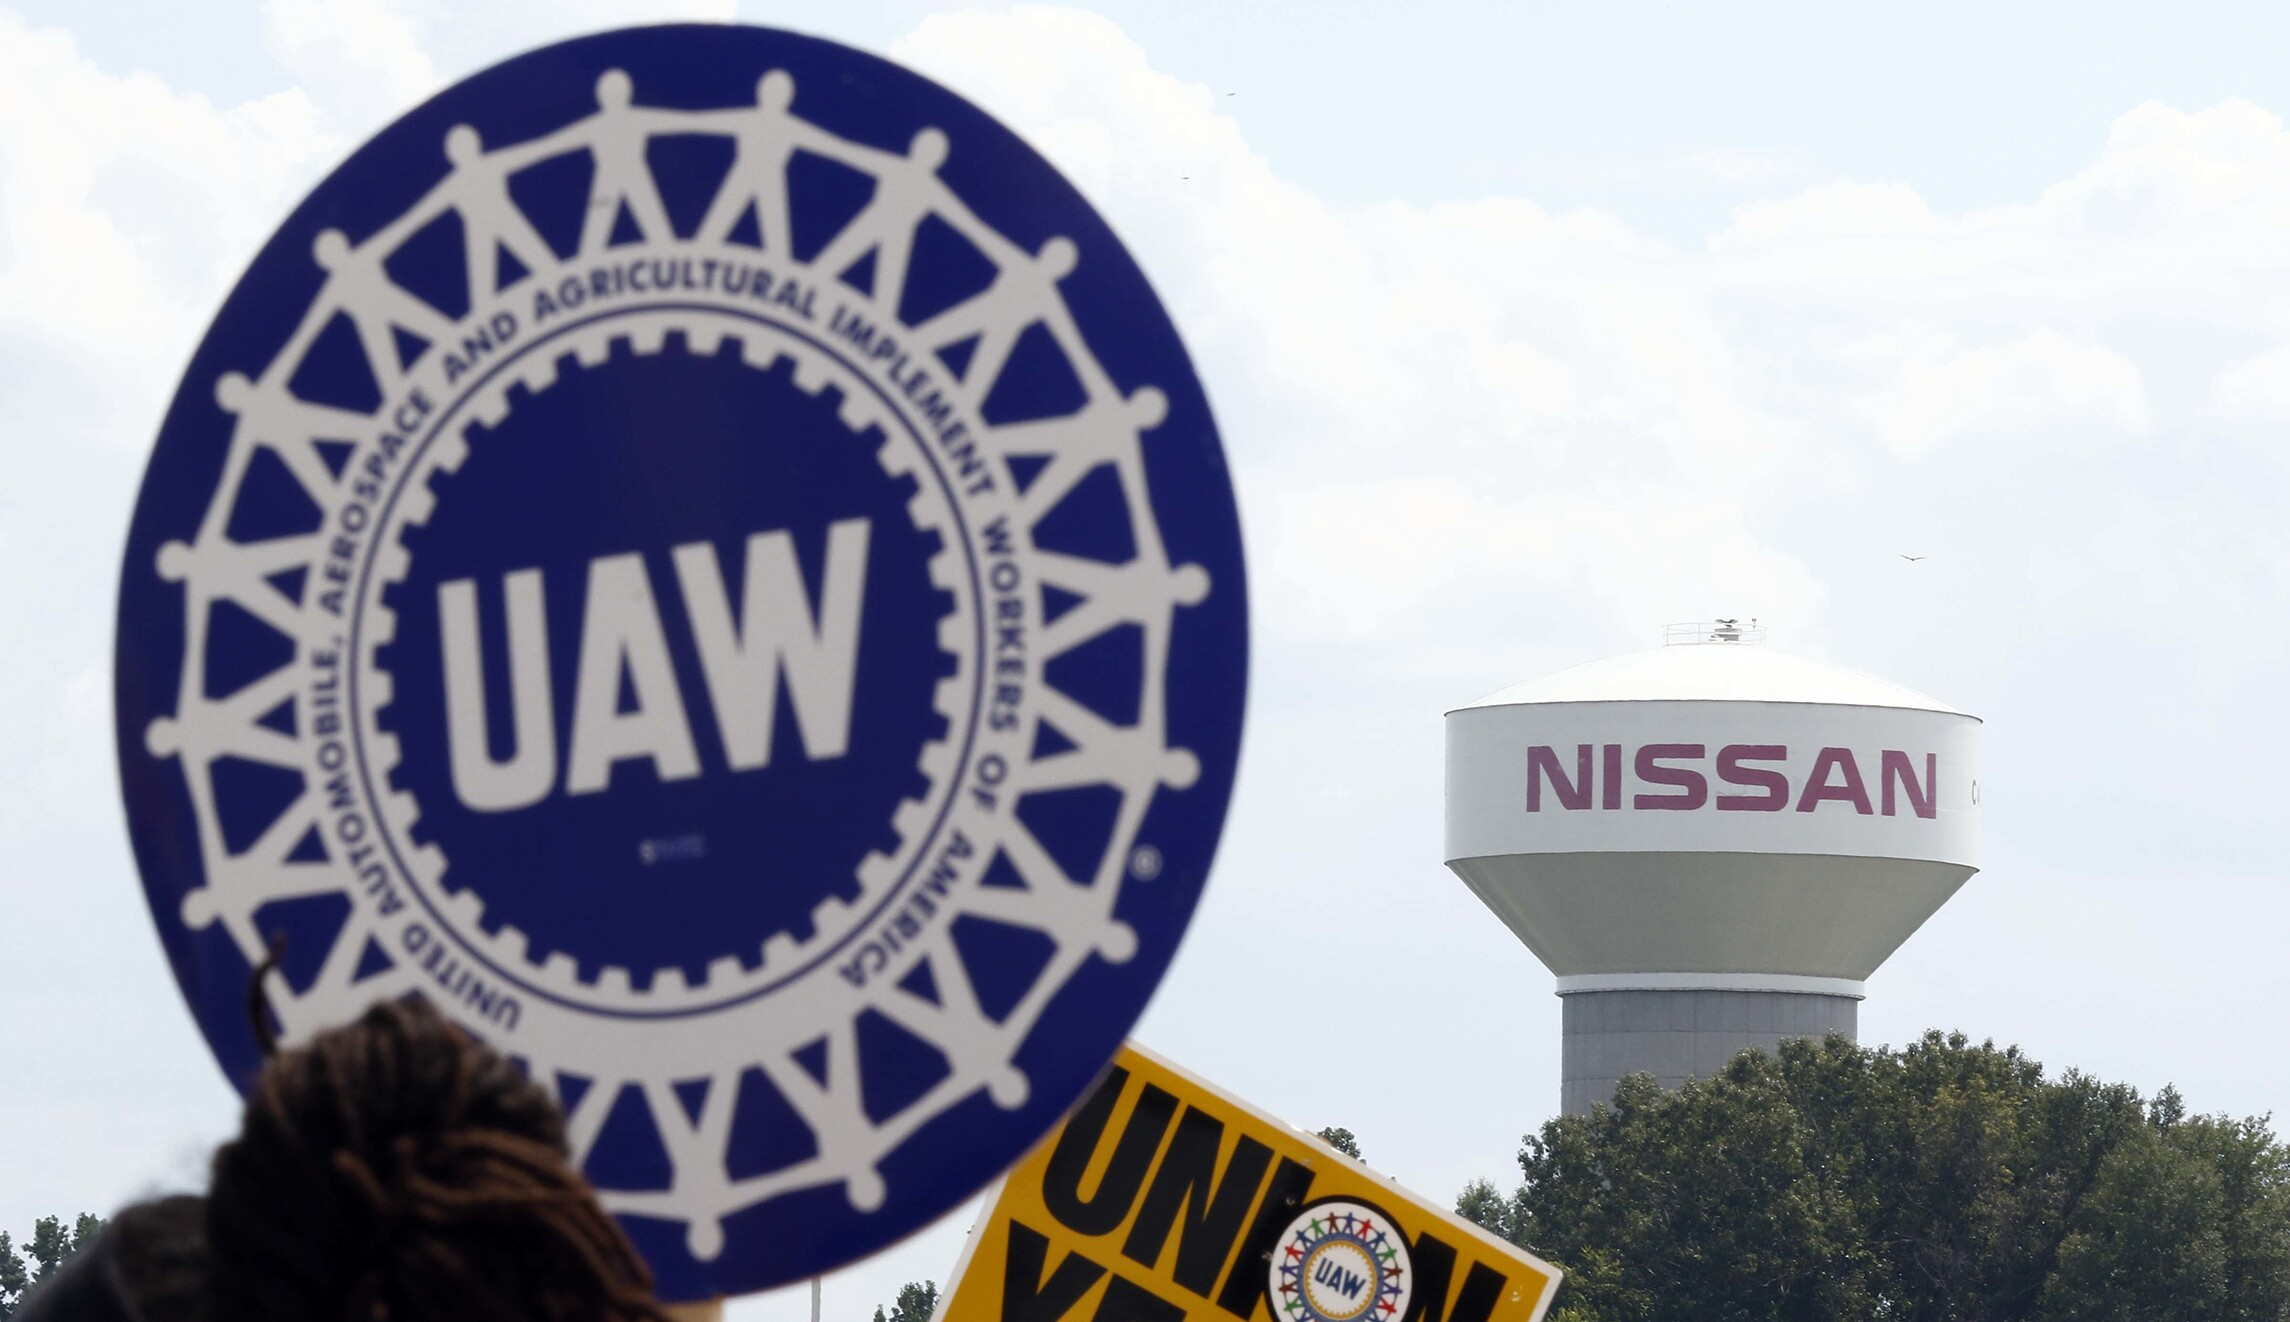 The UAW is helping itself at US workers' expense